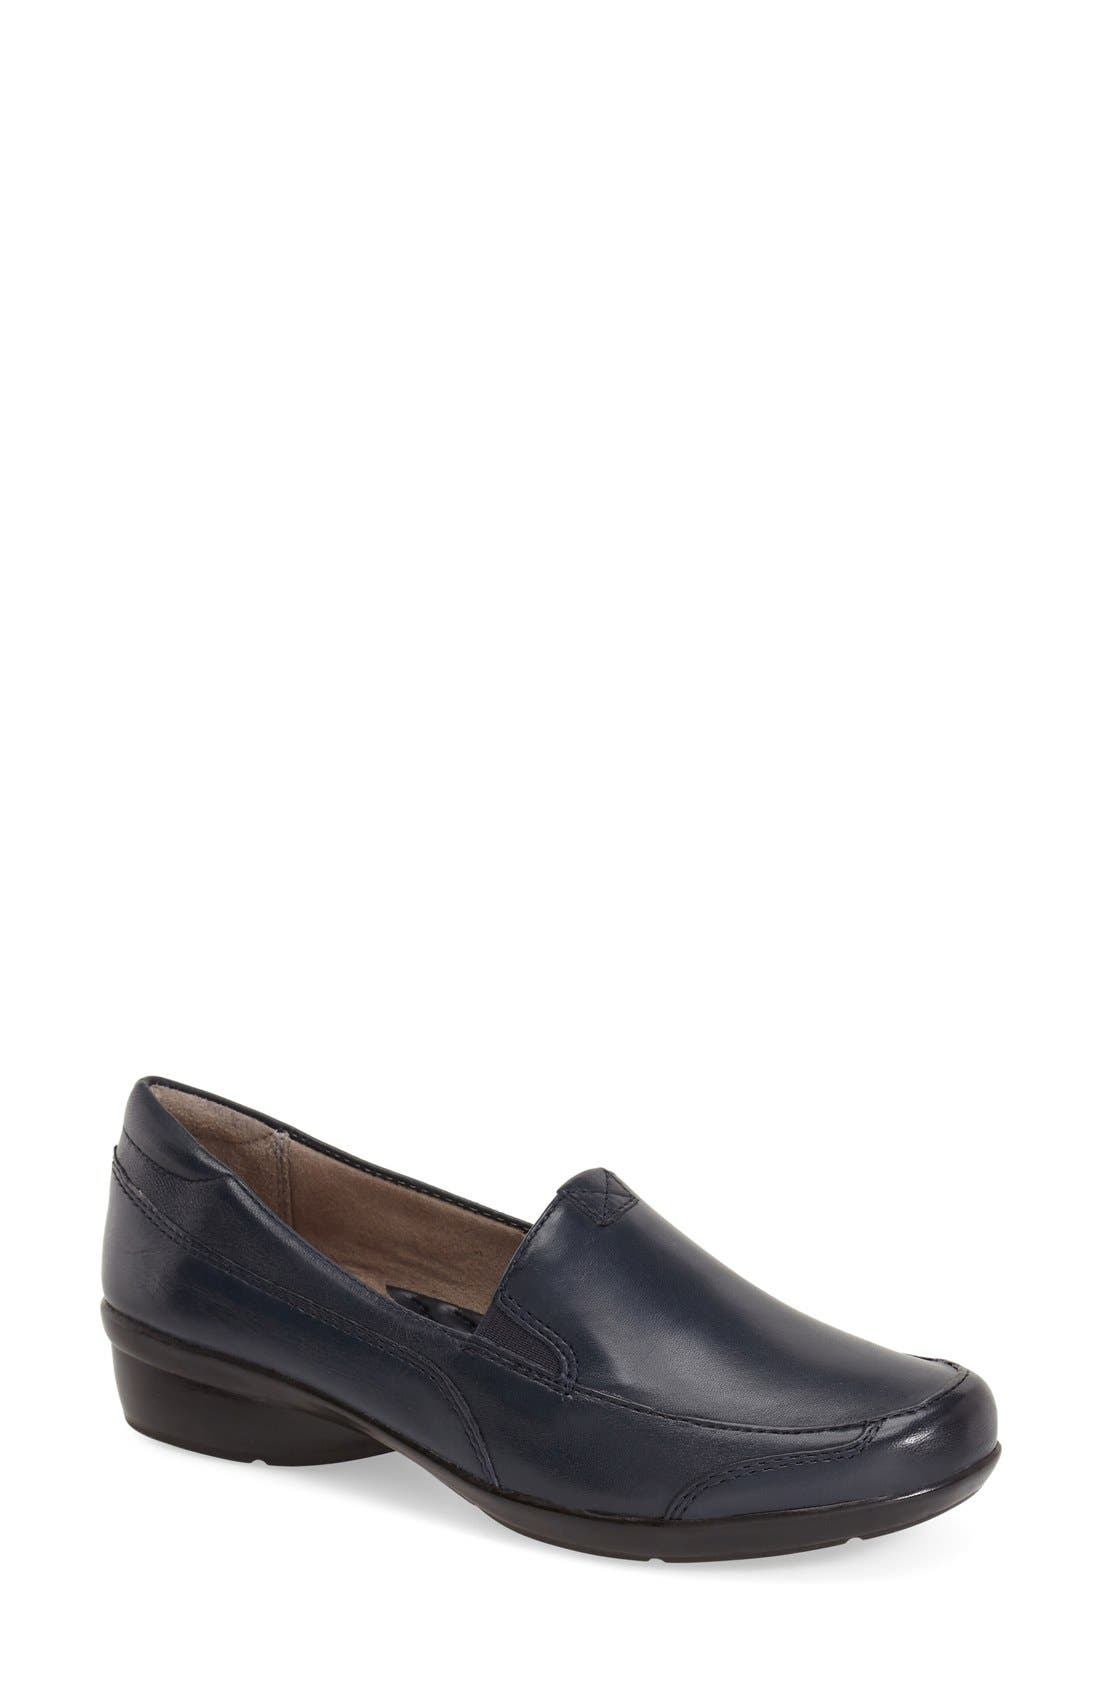 NATURALIZER, 'Channing' Loafer, Main thumbnail 1, color, NAVY